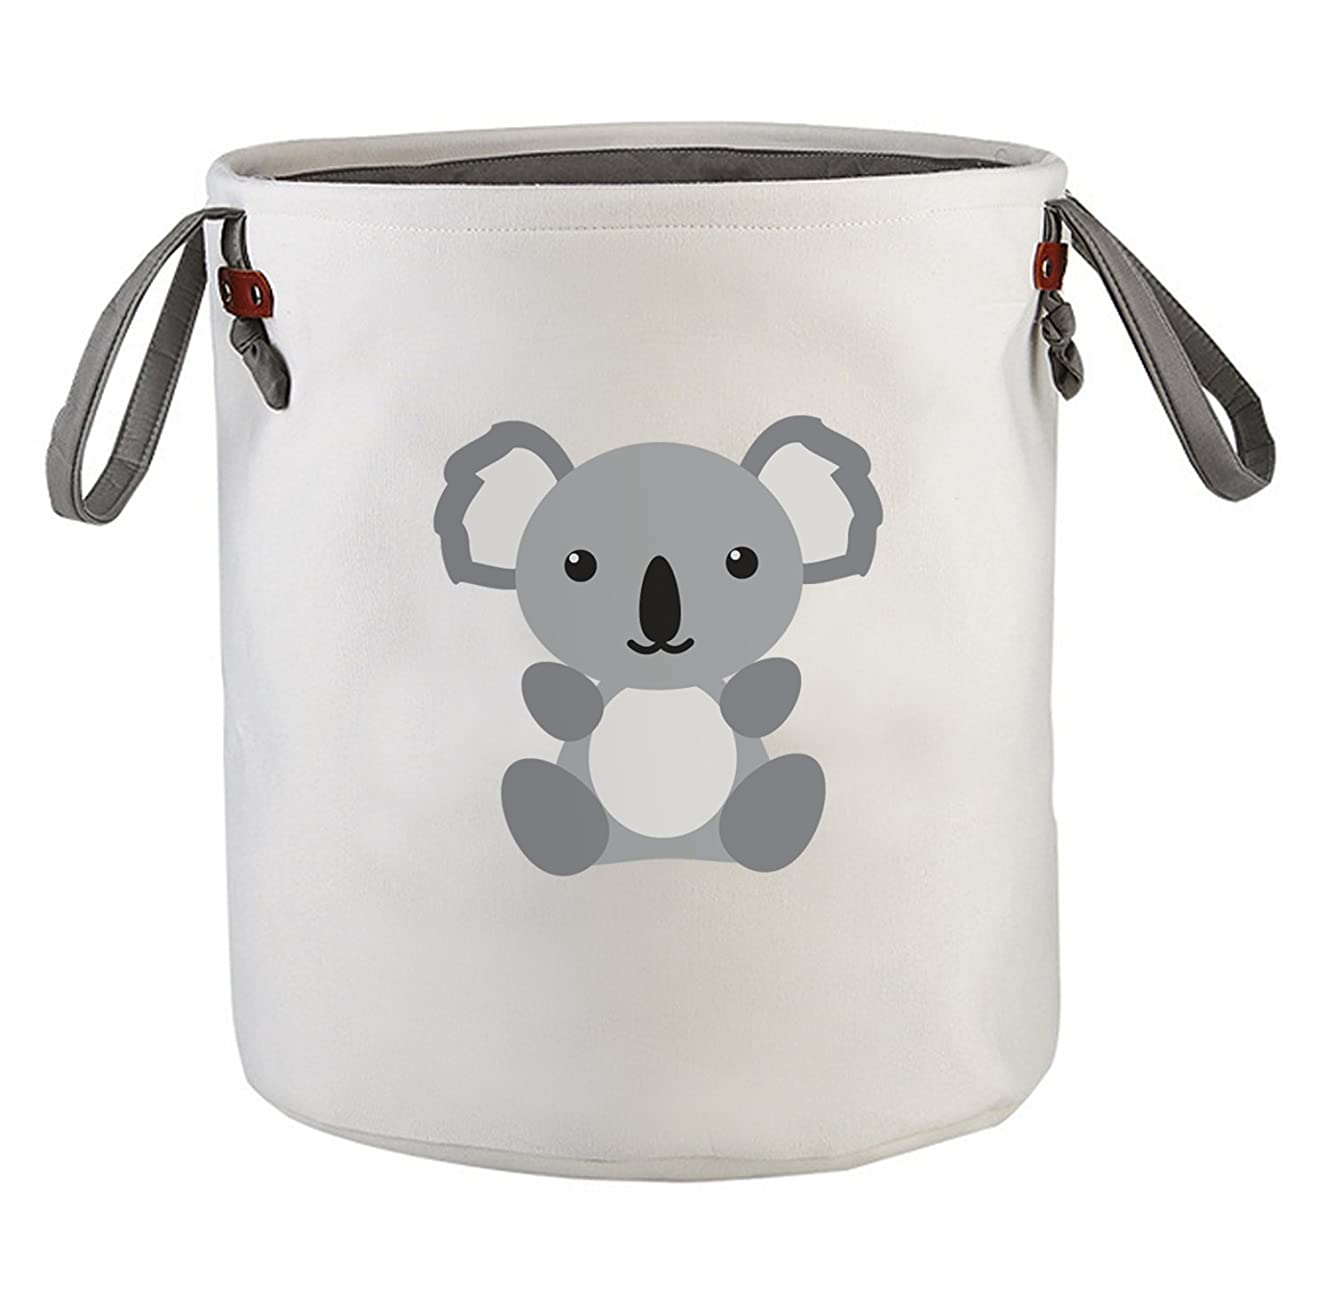 Cute Storage Baskets, Baby Hampers, Baby Laundry Basket, Laundry Hamper, Kids Storage Bin, Nursery Baskets, Animal Hamper, Storage Organizer Bins, Nursery Hamper Bin, Toy Storage– Koala Design